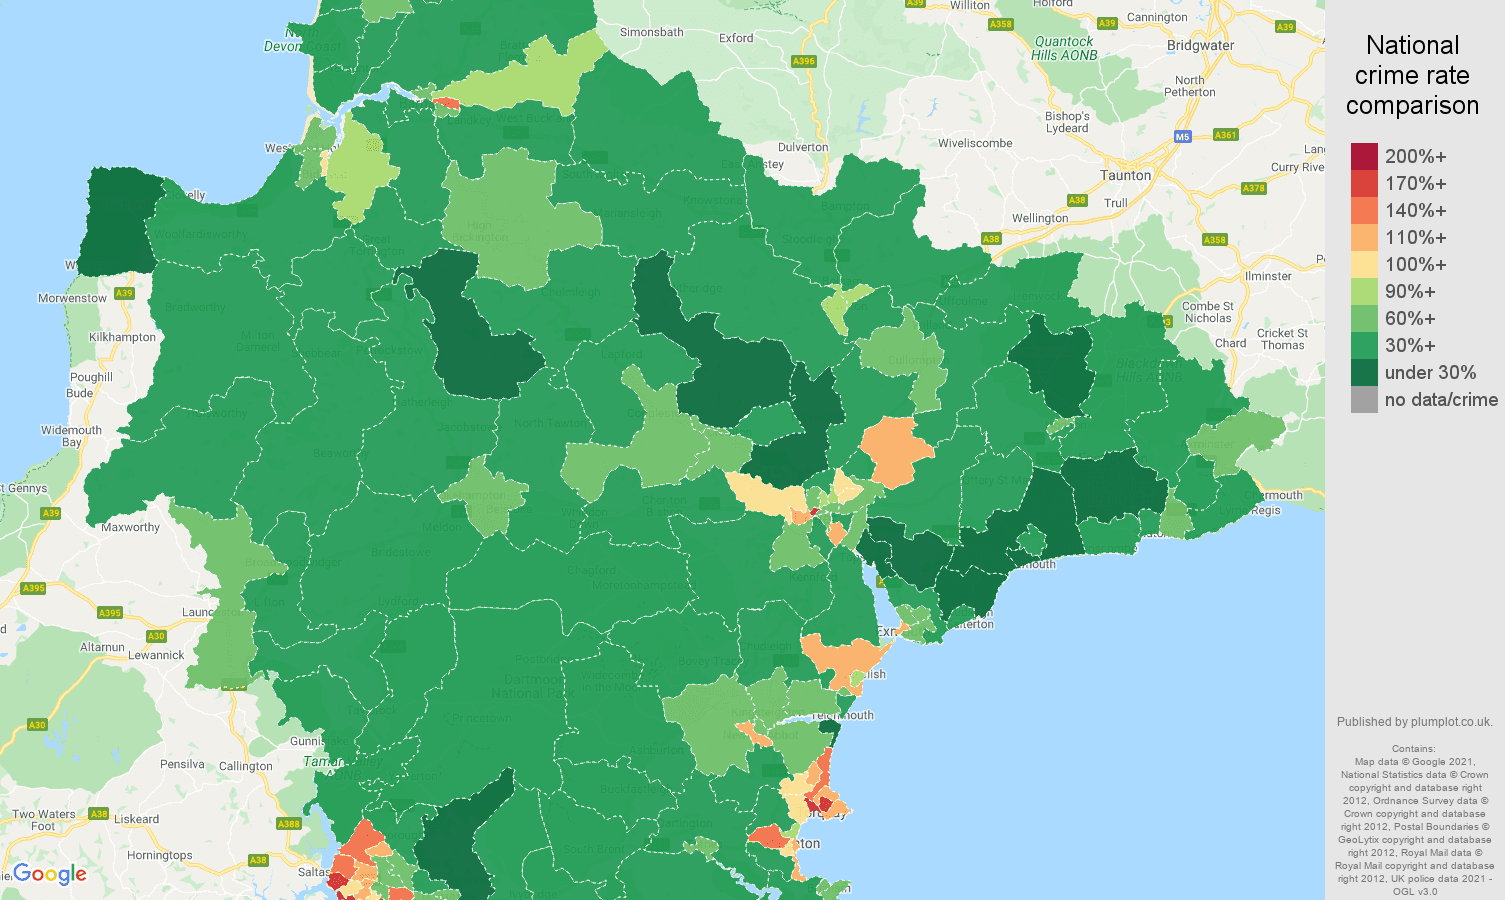 Devon violent crime rate comparison map